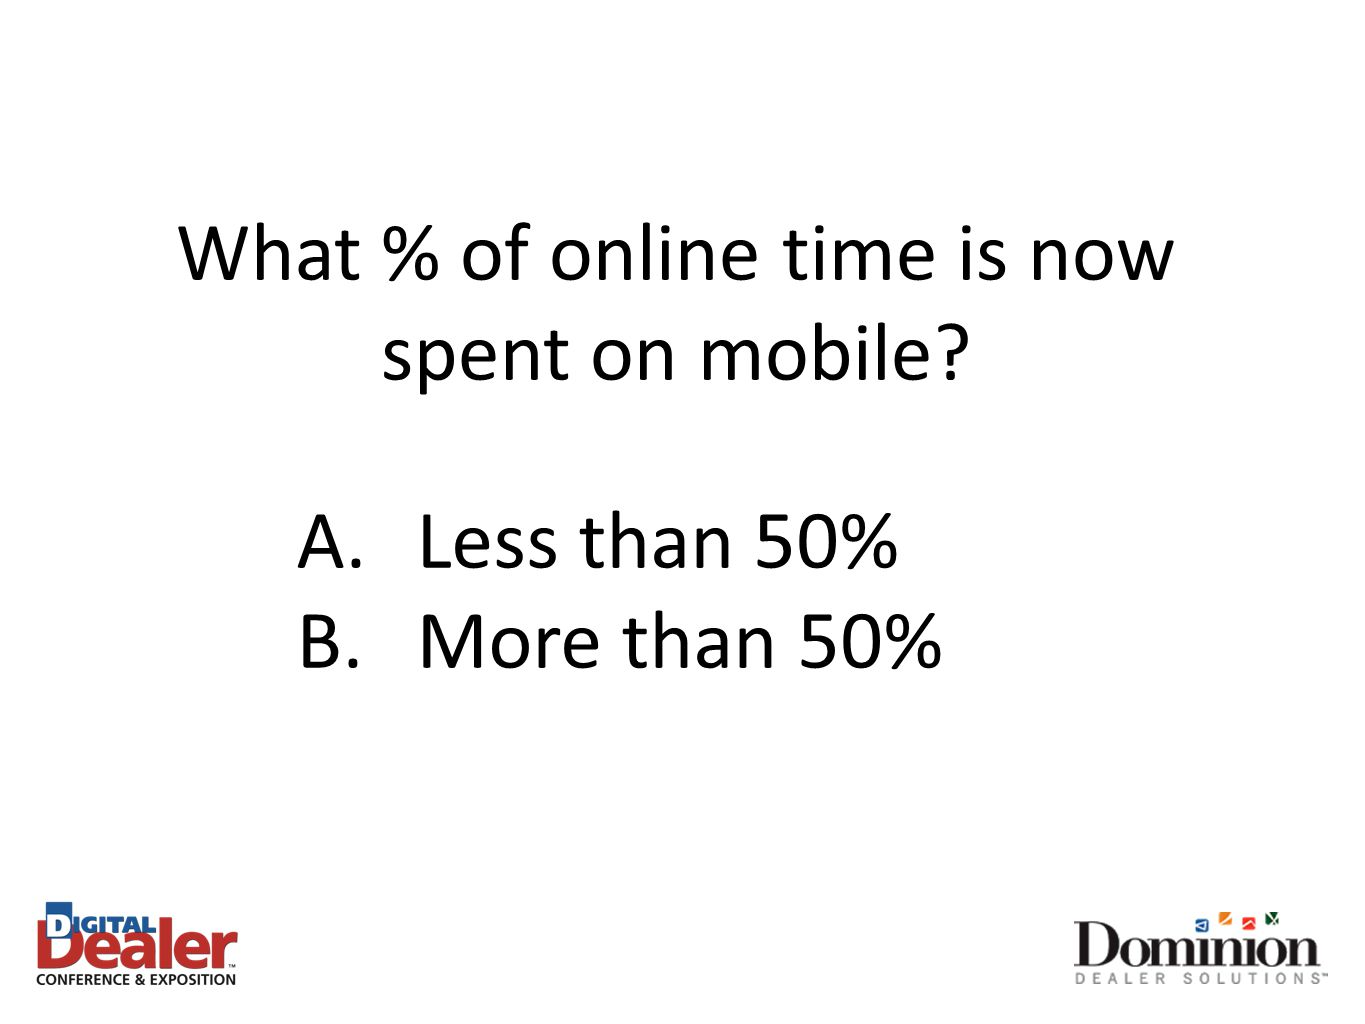 What % of online time is now spent on mobile A.Less than 50% B.More than 50%